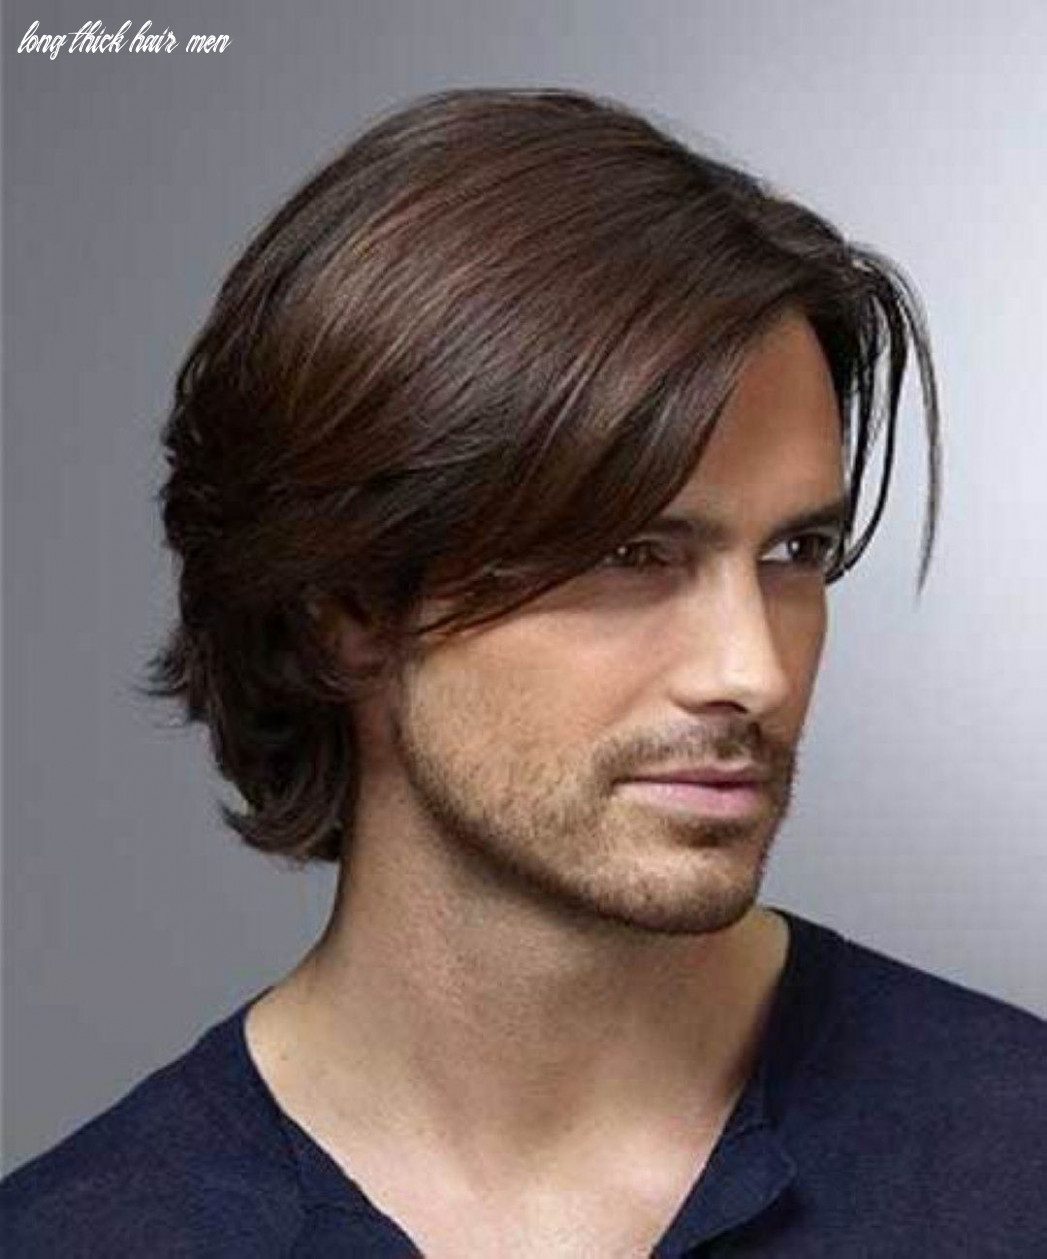 Pin on haircut long thick hair men